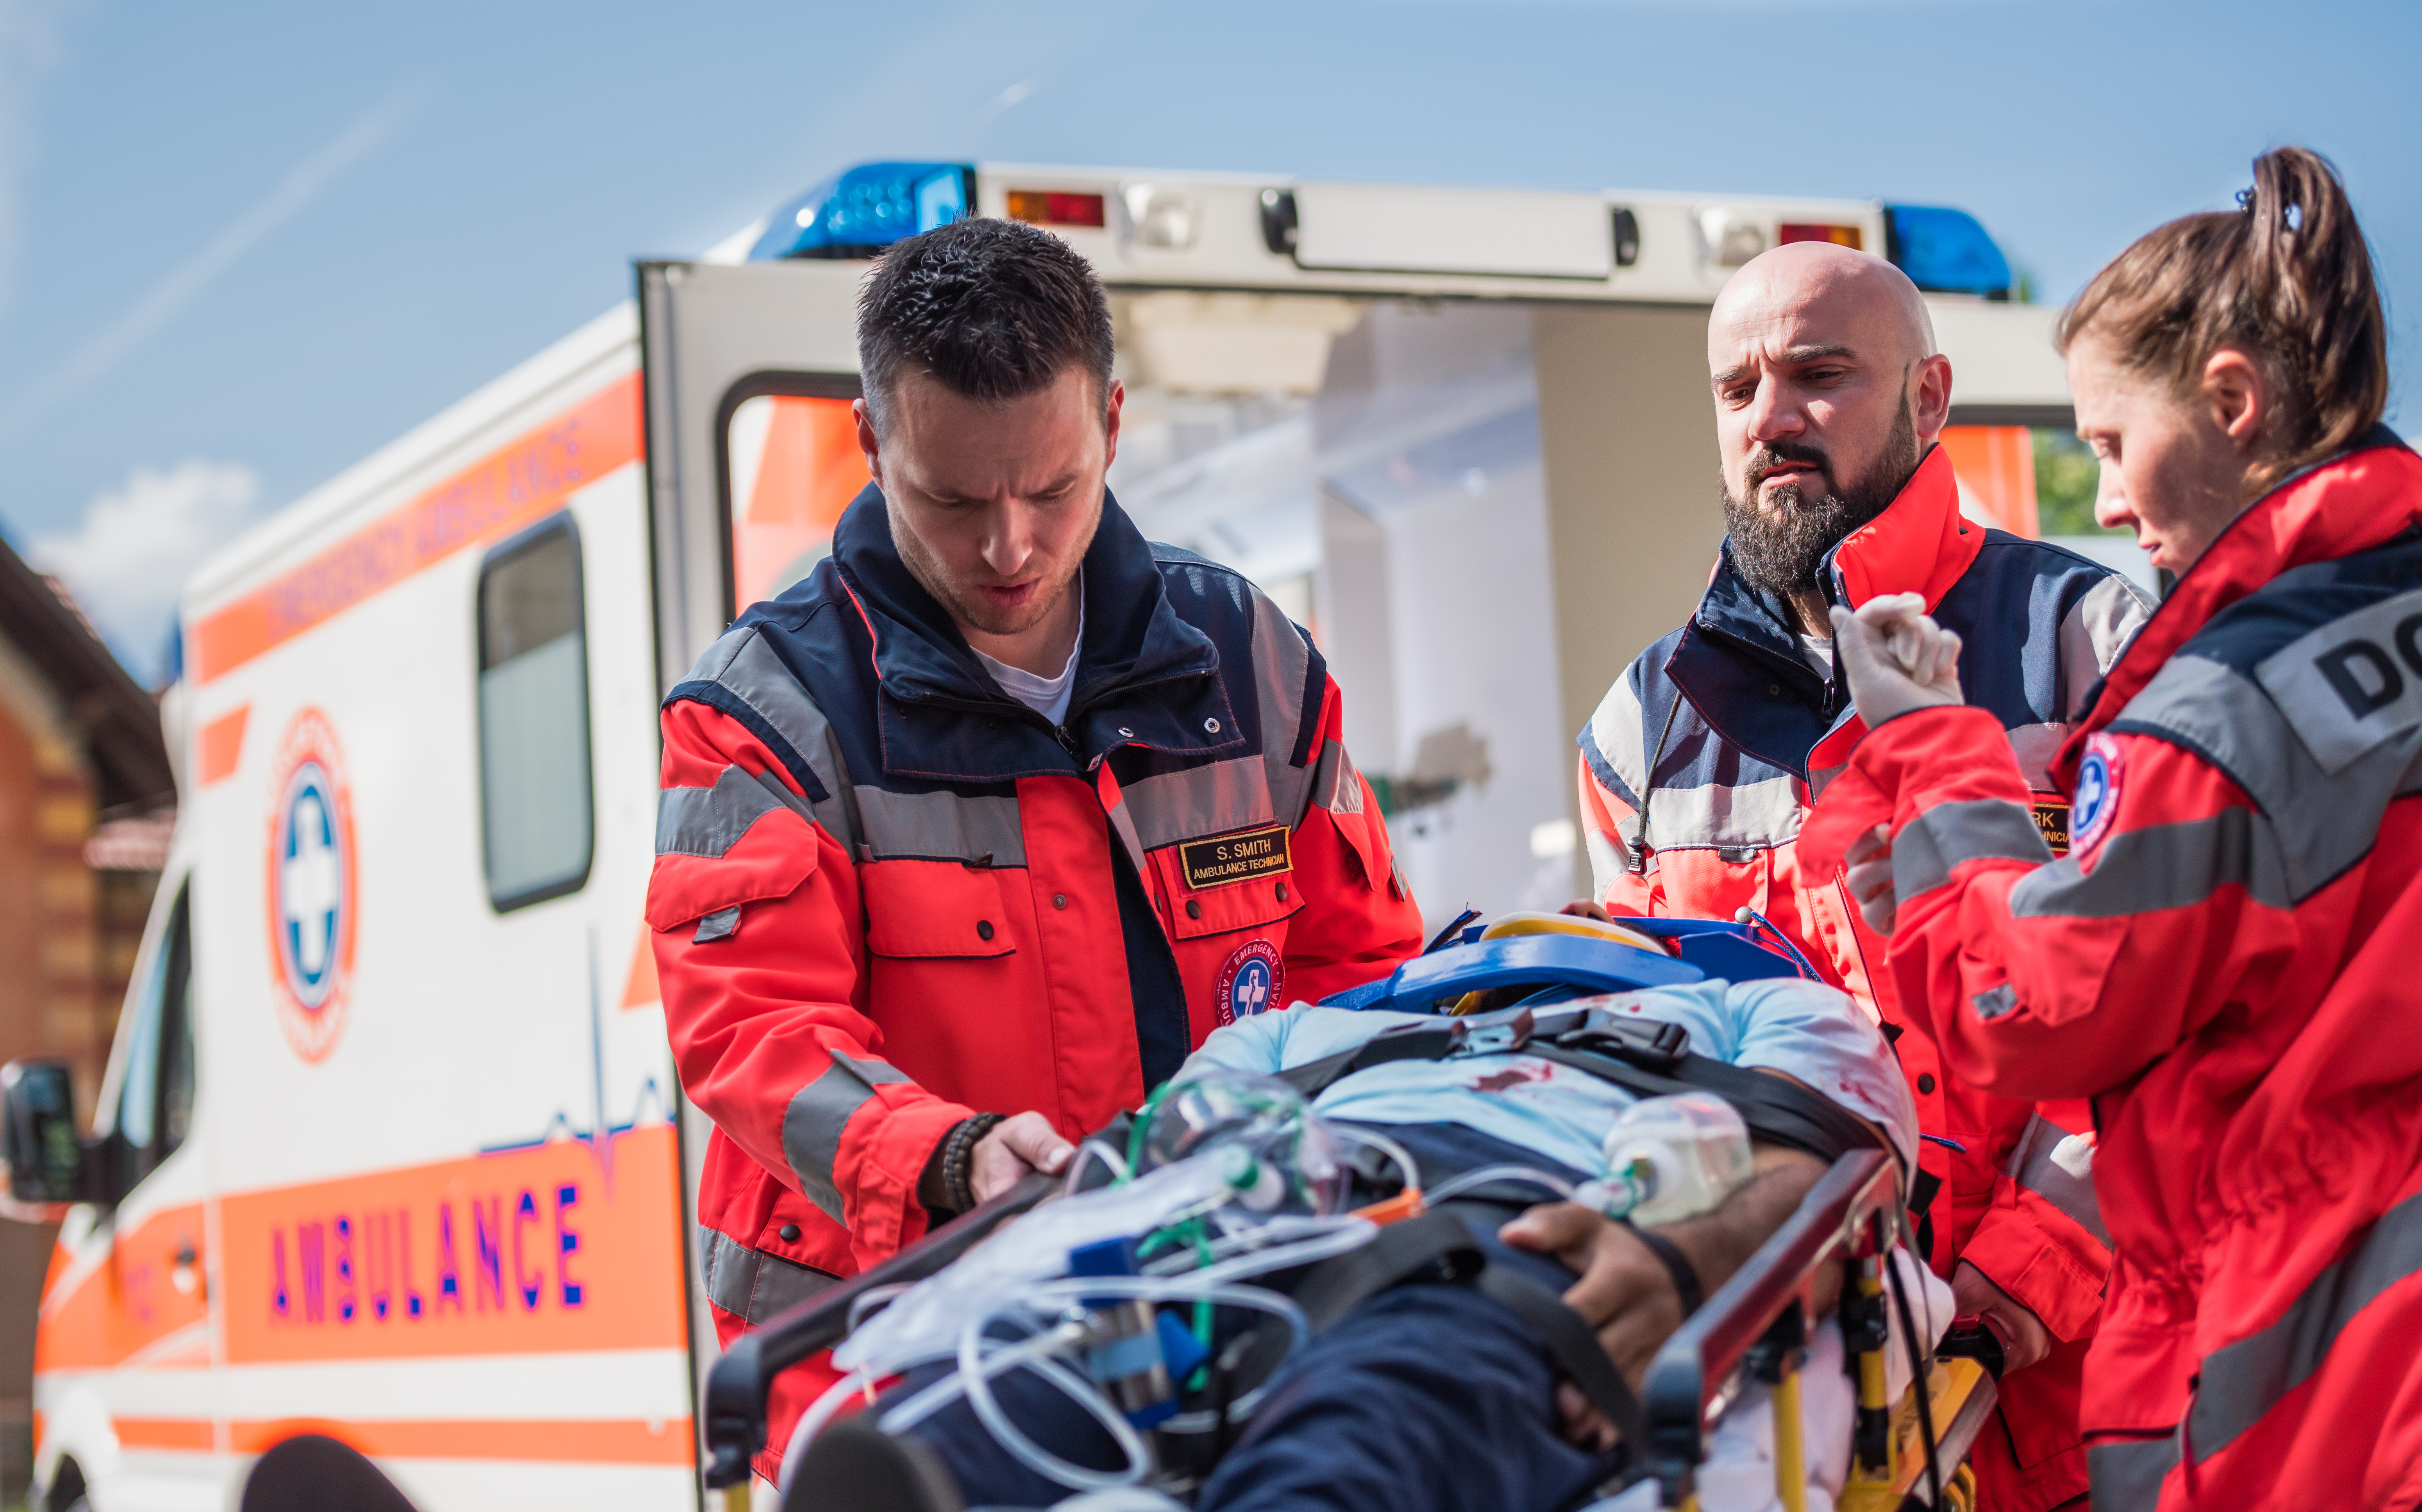 Types of EMTs | Career Trend